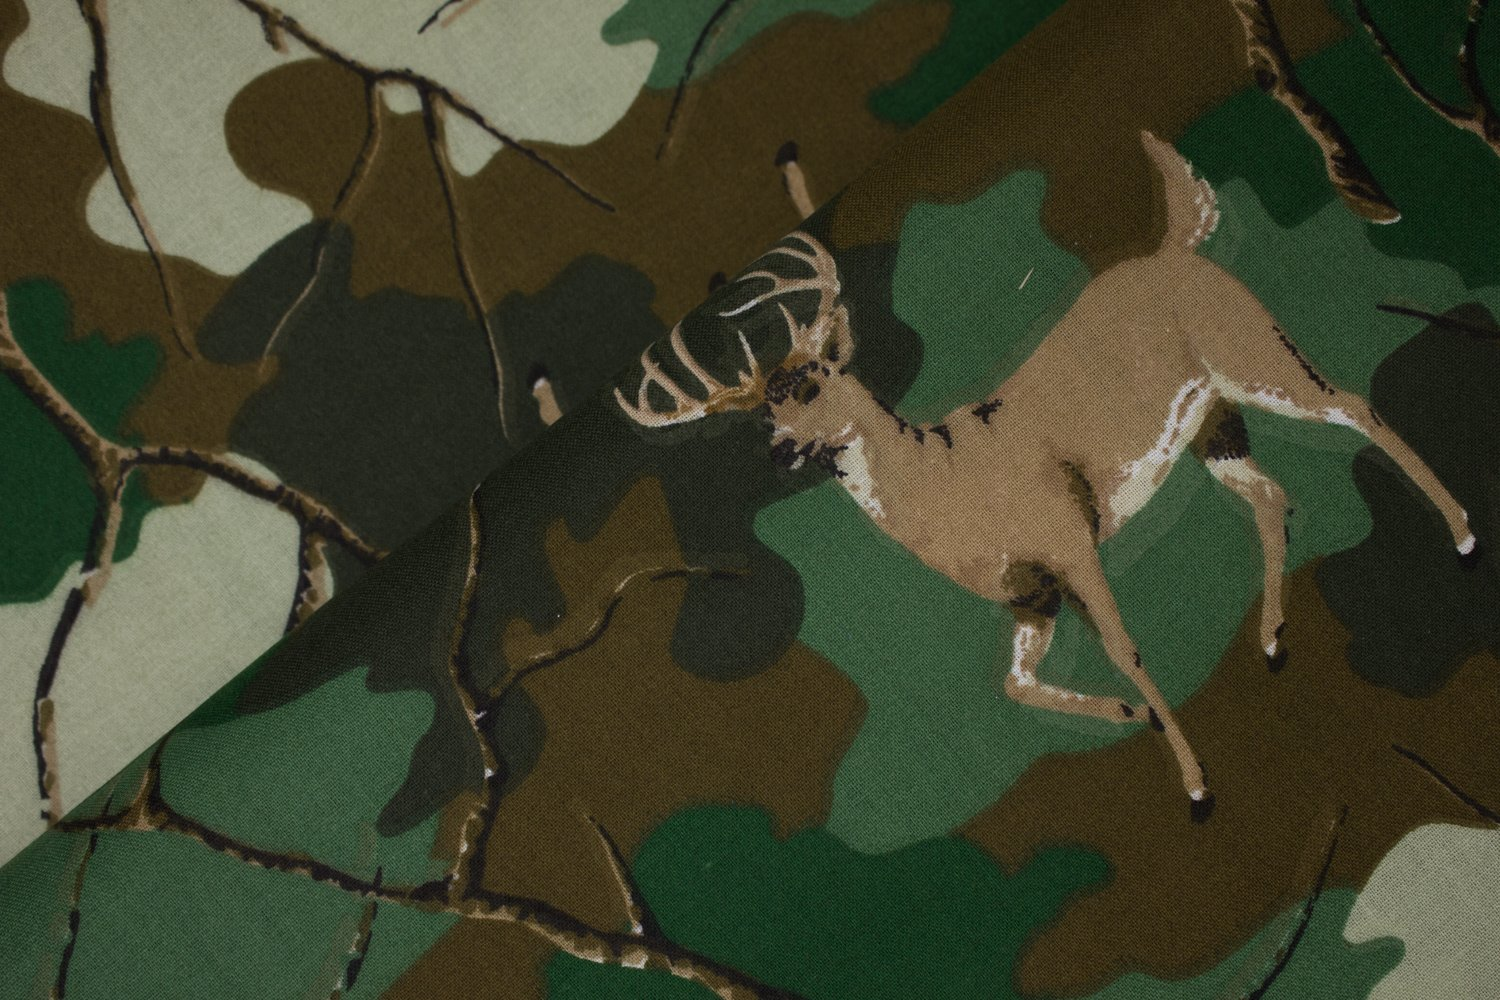 Deer on Camo with Random Branches